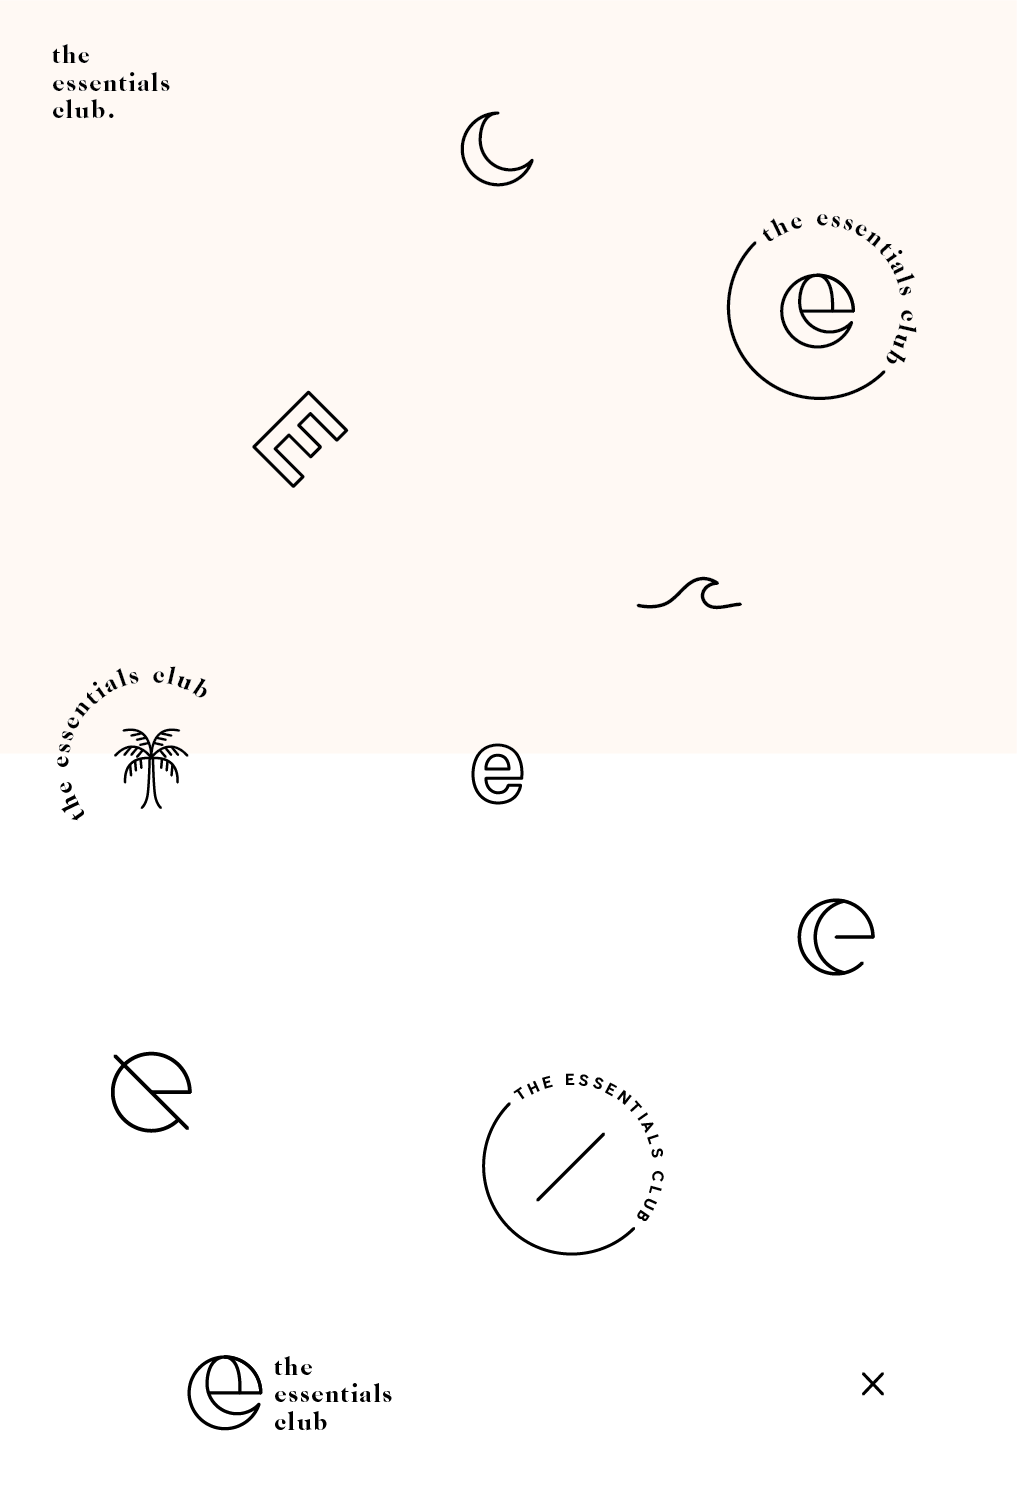 The Essentials Club logo concept icon designs  minimal tropical typography grap  The Essentials Club logo concept icon designs  minimal tropical typography graphic design...